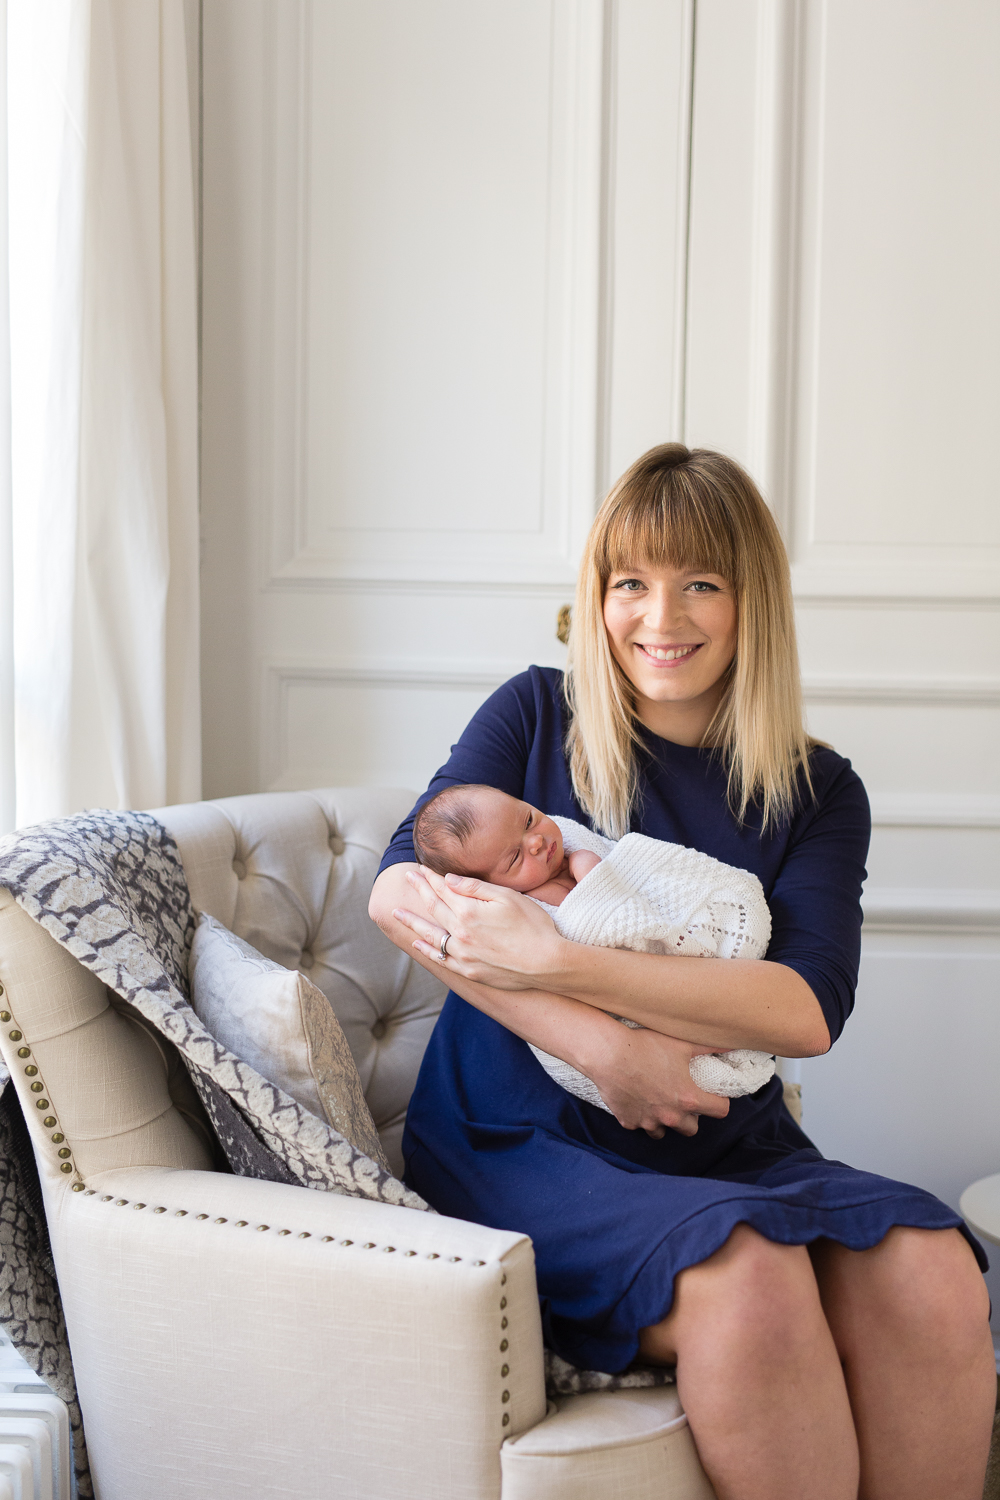 stylish-newborn-photo-session-inspiration-at-home-paris-photographer_020.jpg